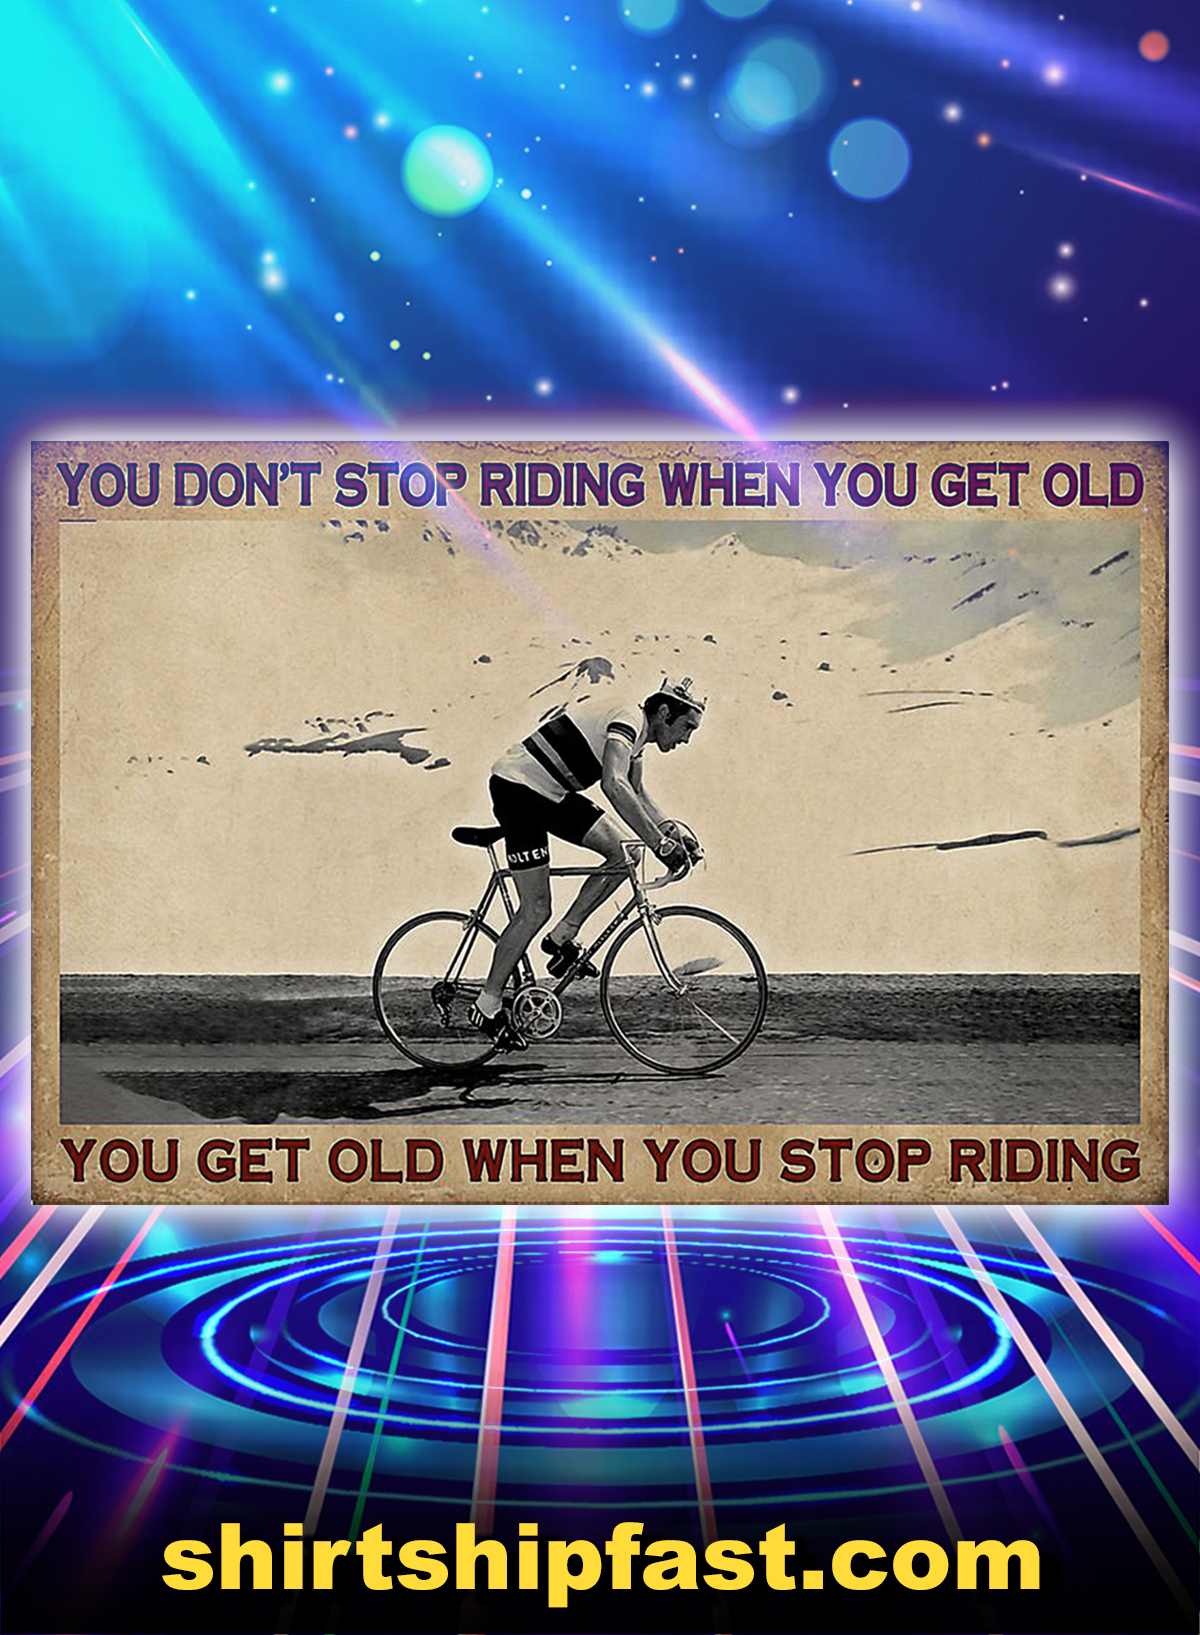 Cycling you don't stop riding when you get old poster - A1